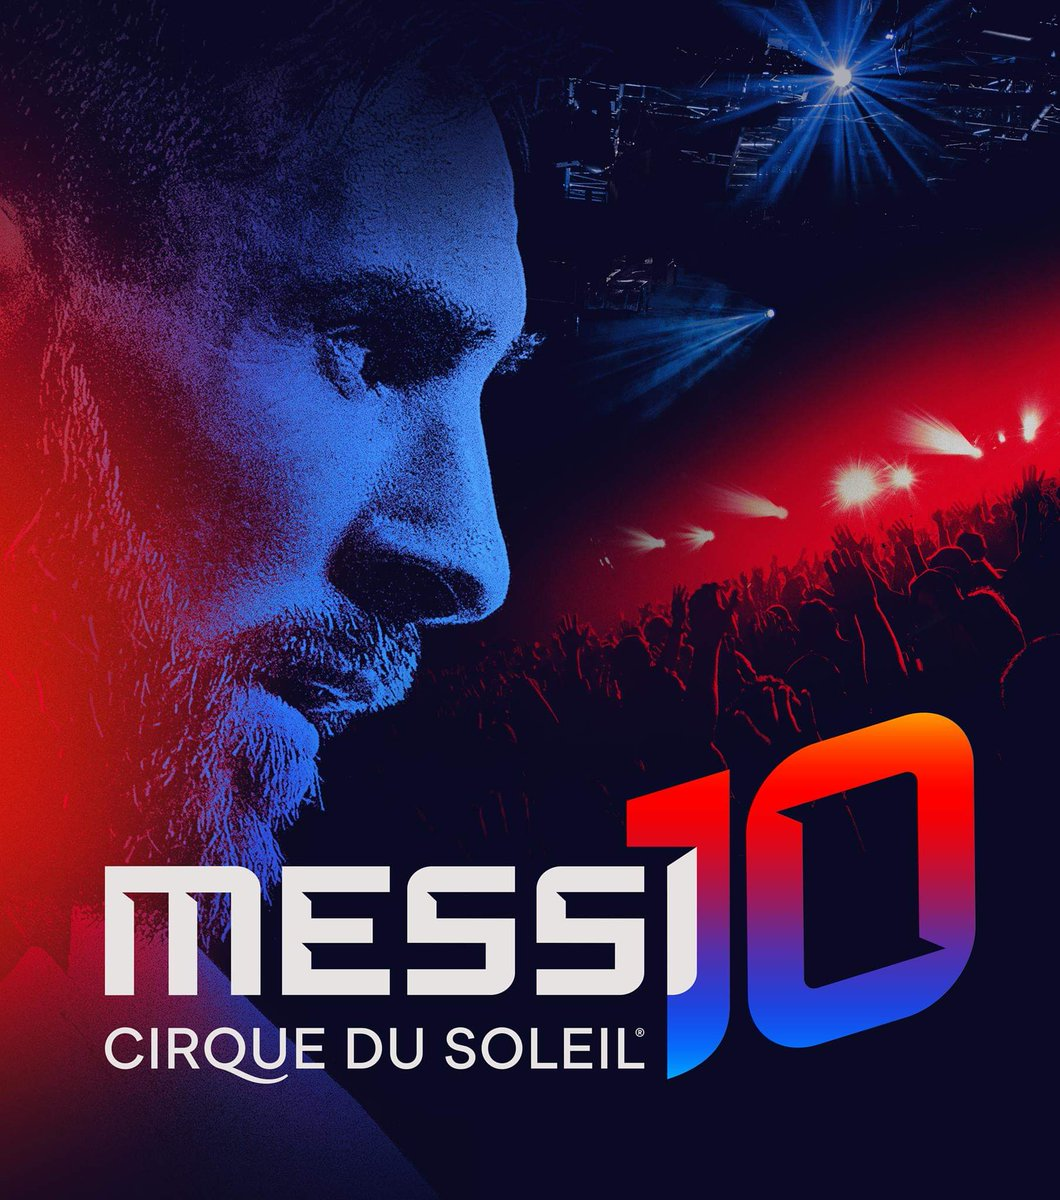 Quotes On Messi On Twitter At Cirque Promising To Be An